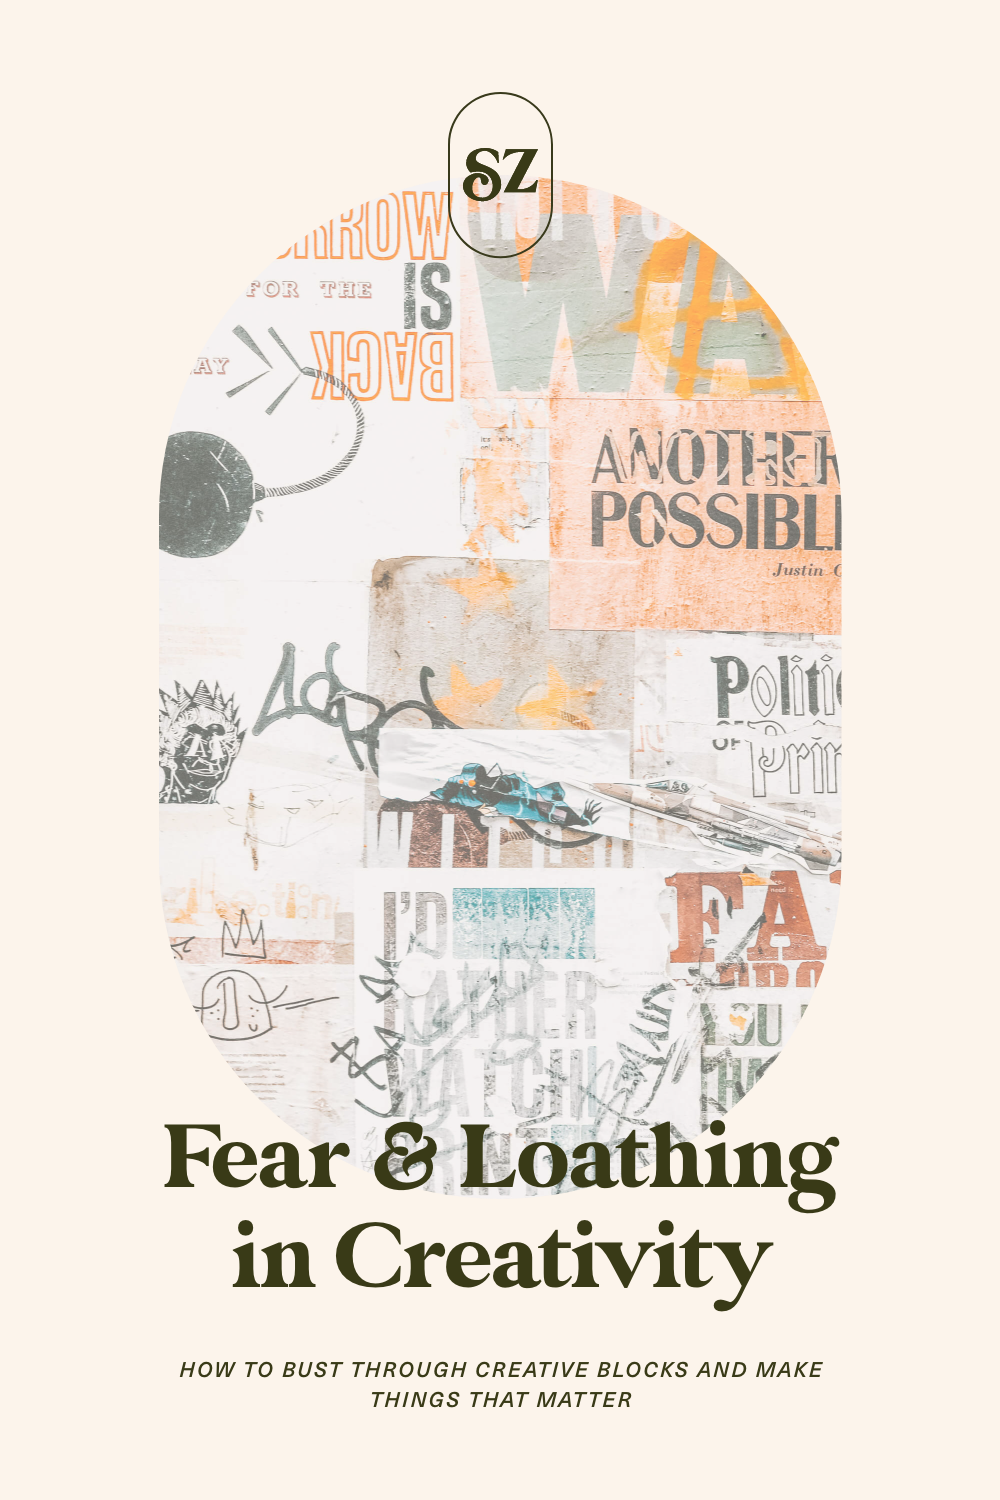 Pin it: Fear & Loathing in Creativity. How to bust through creative blocks and make things that matter